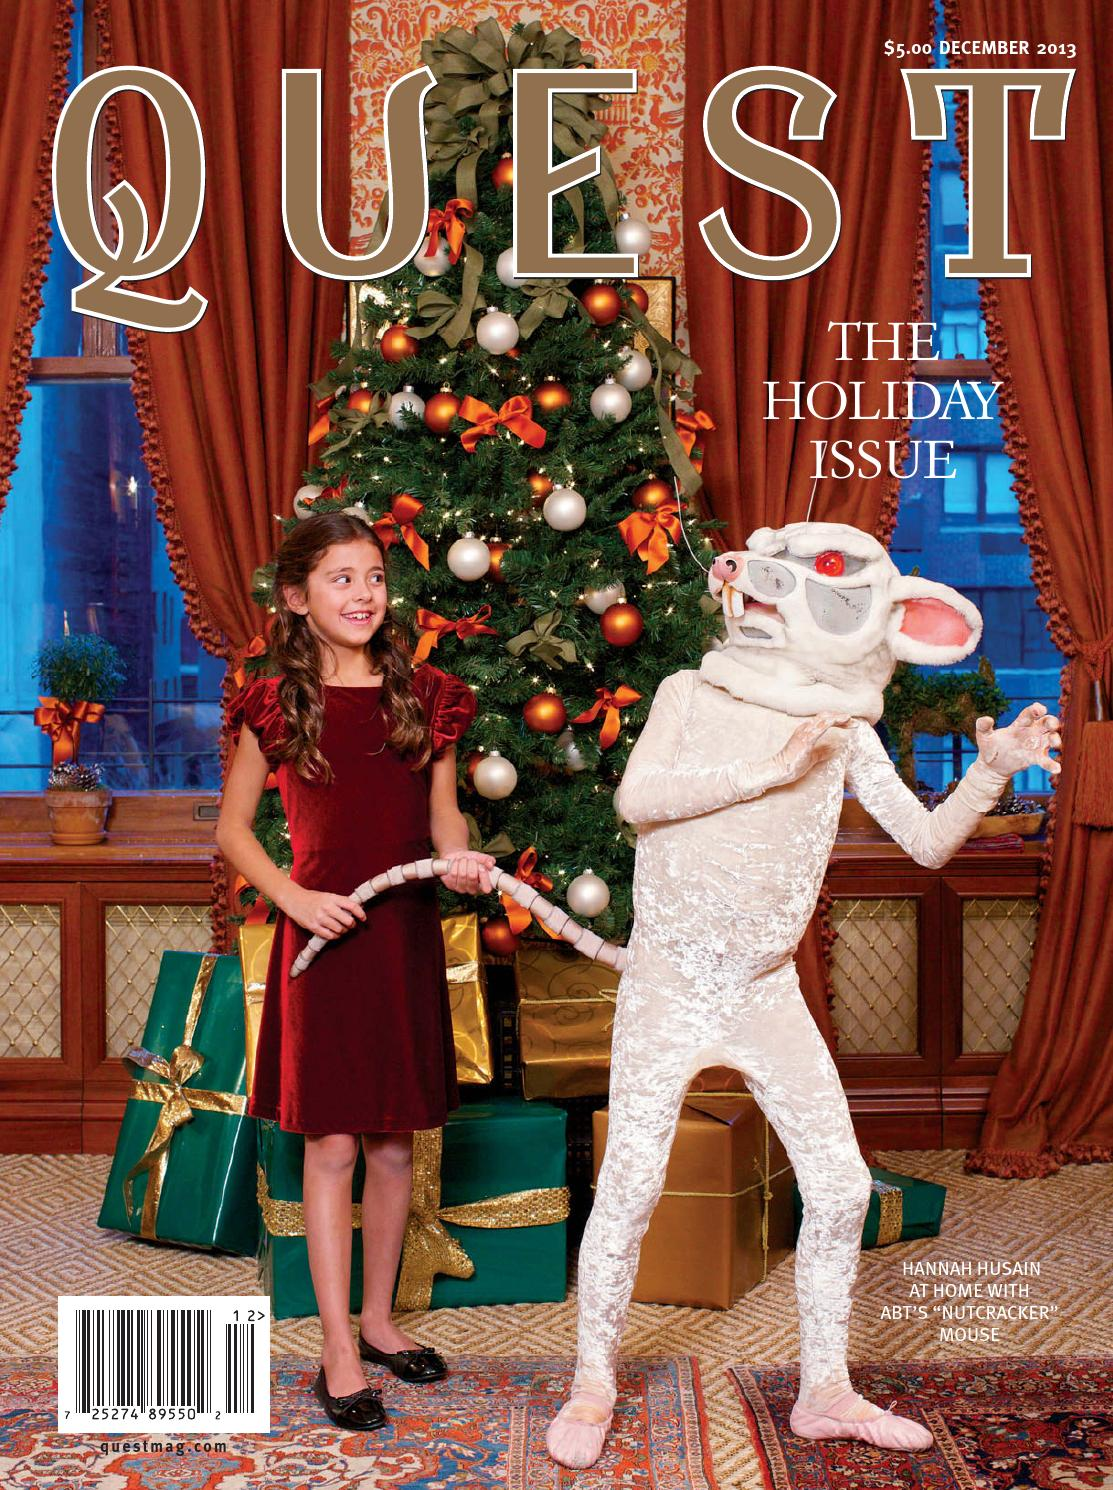 Quest December 2013 by QUEST Magazine - issuu